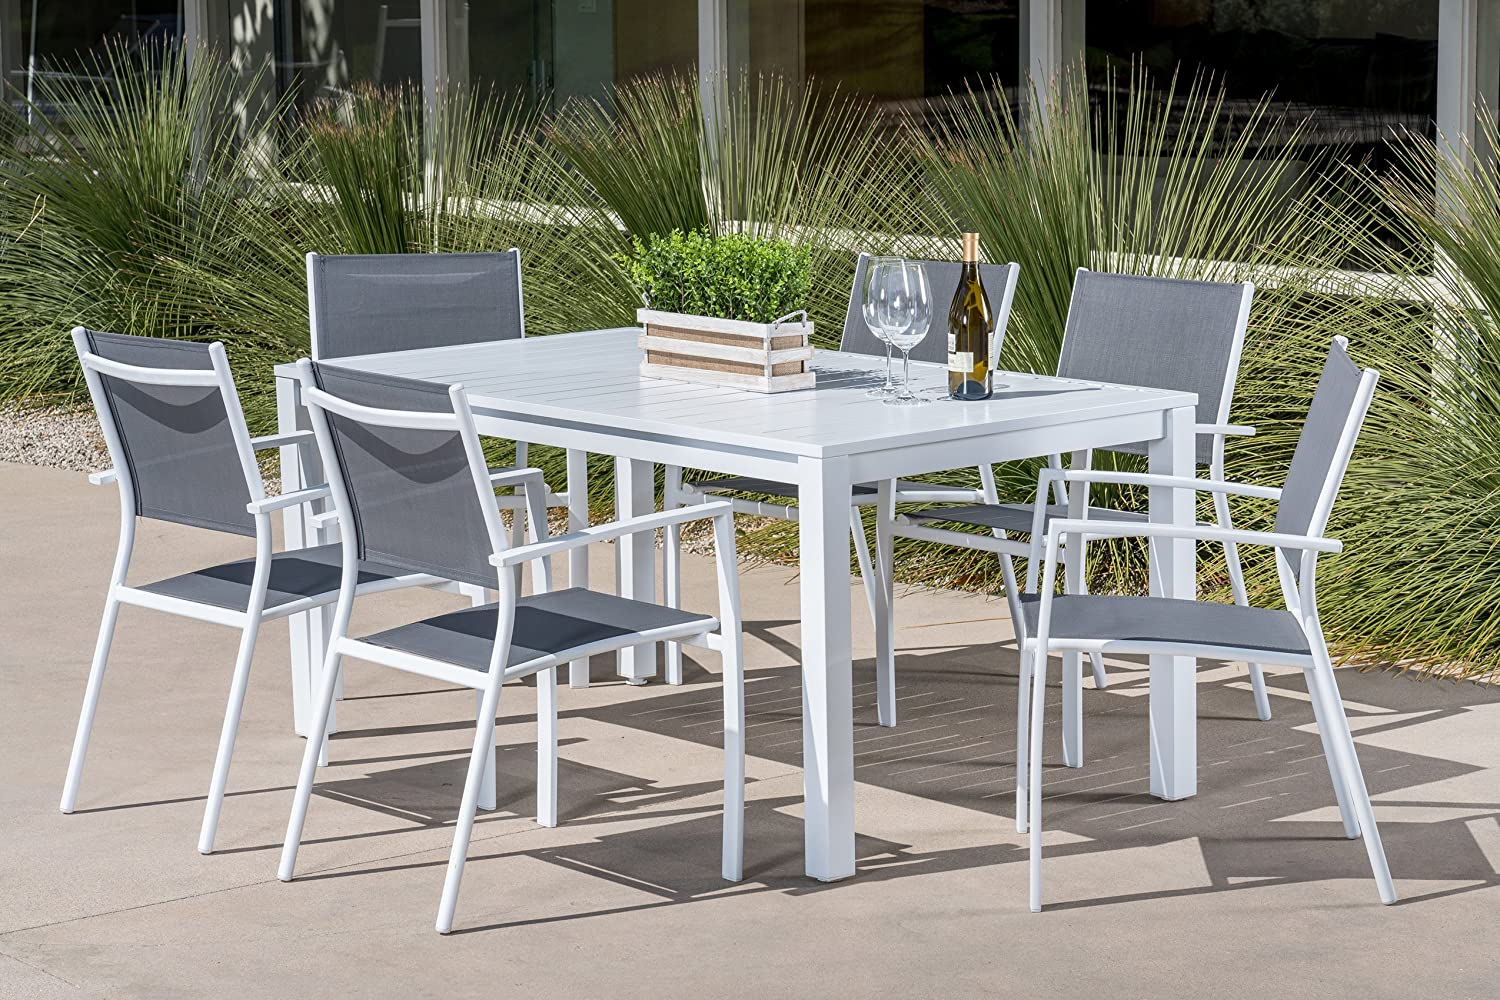 "Mōd Furniture HARPDNS7PC-WHT Harper 7-Piece Set with 6 Sling Chairs and a 78"" x 40"" Dining Table Outdoor Furniture, White"